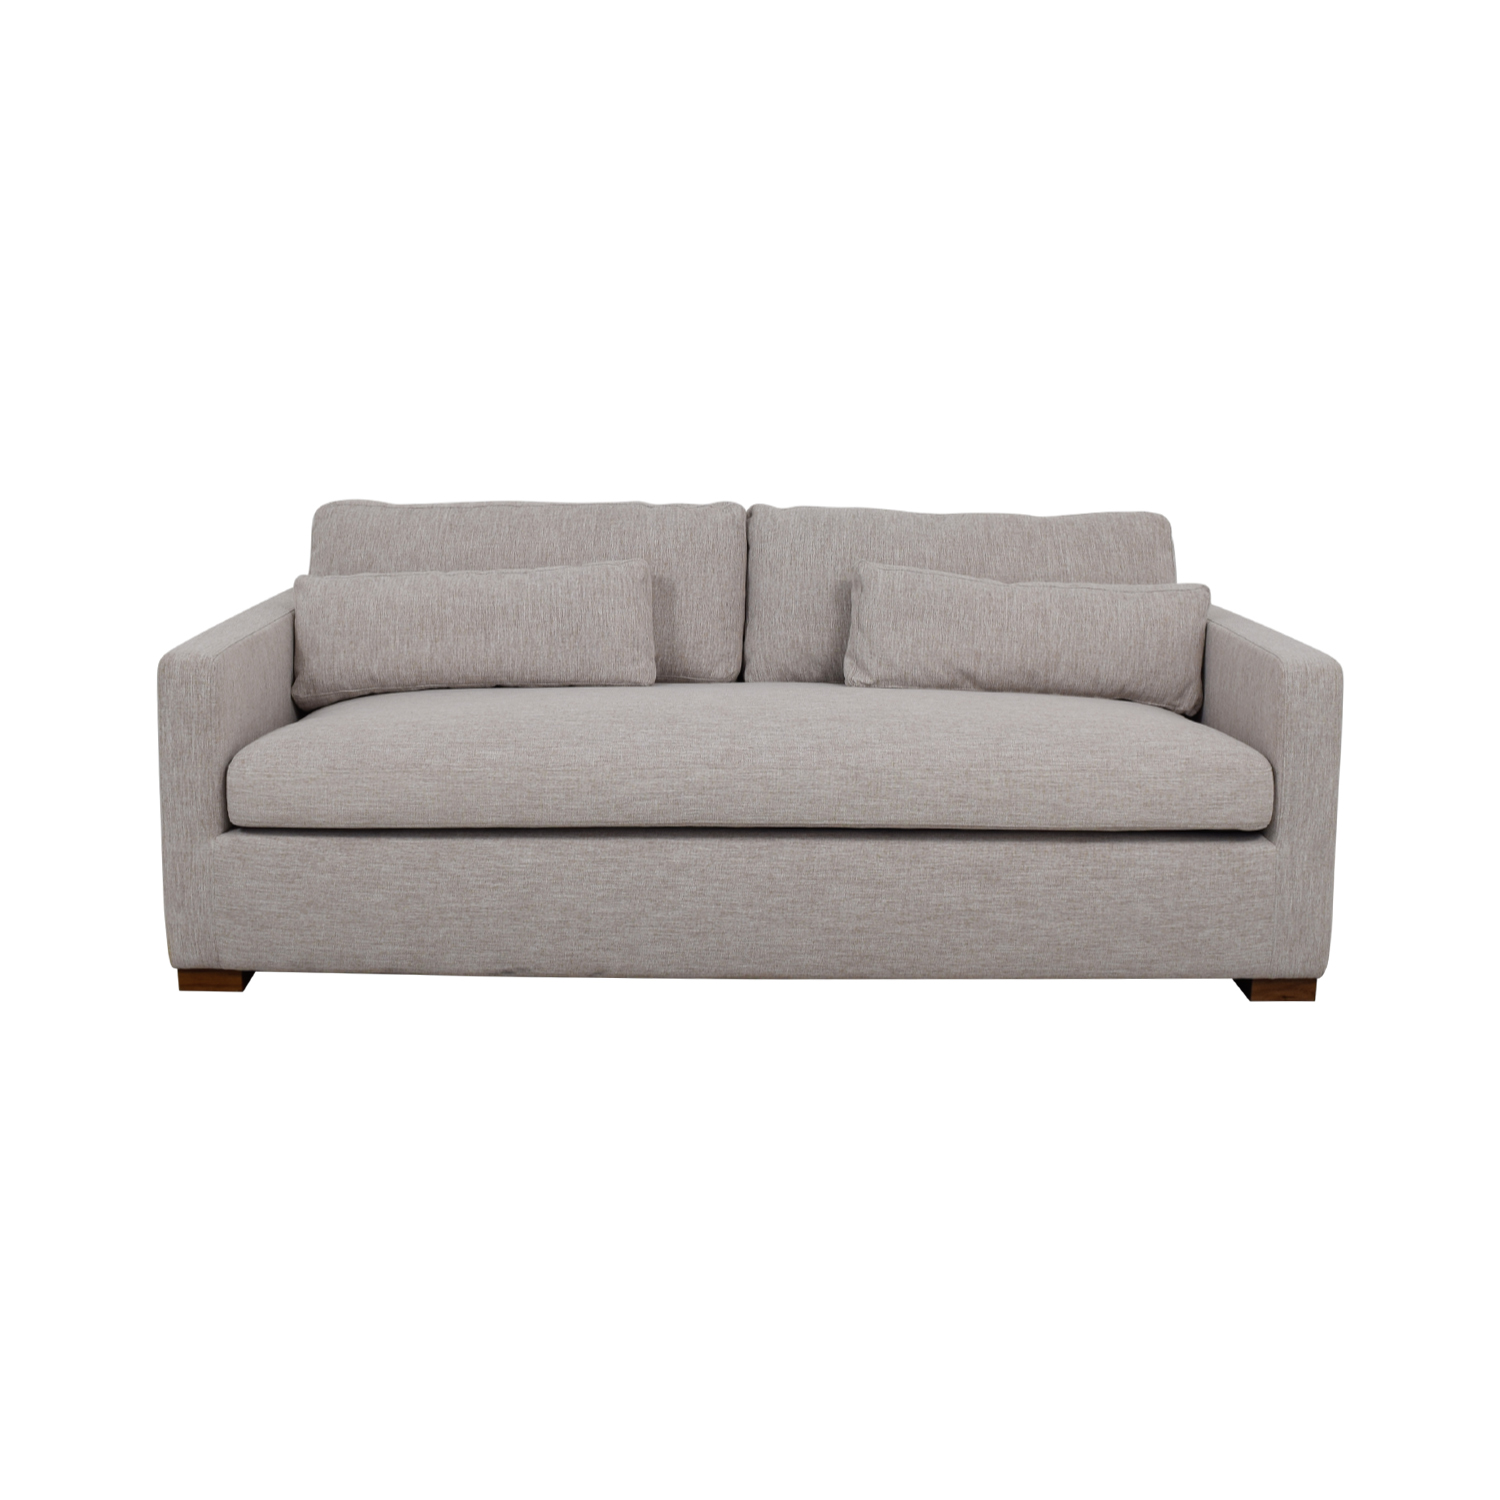 buy Charly Wheat Single Cushion Sofa